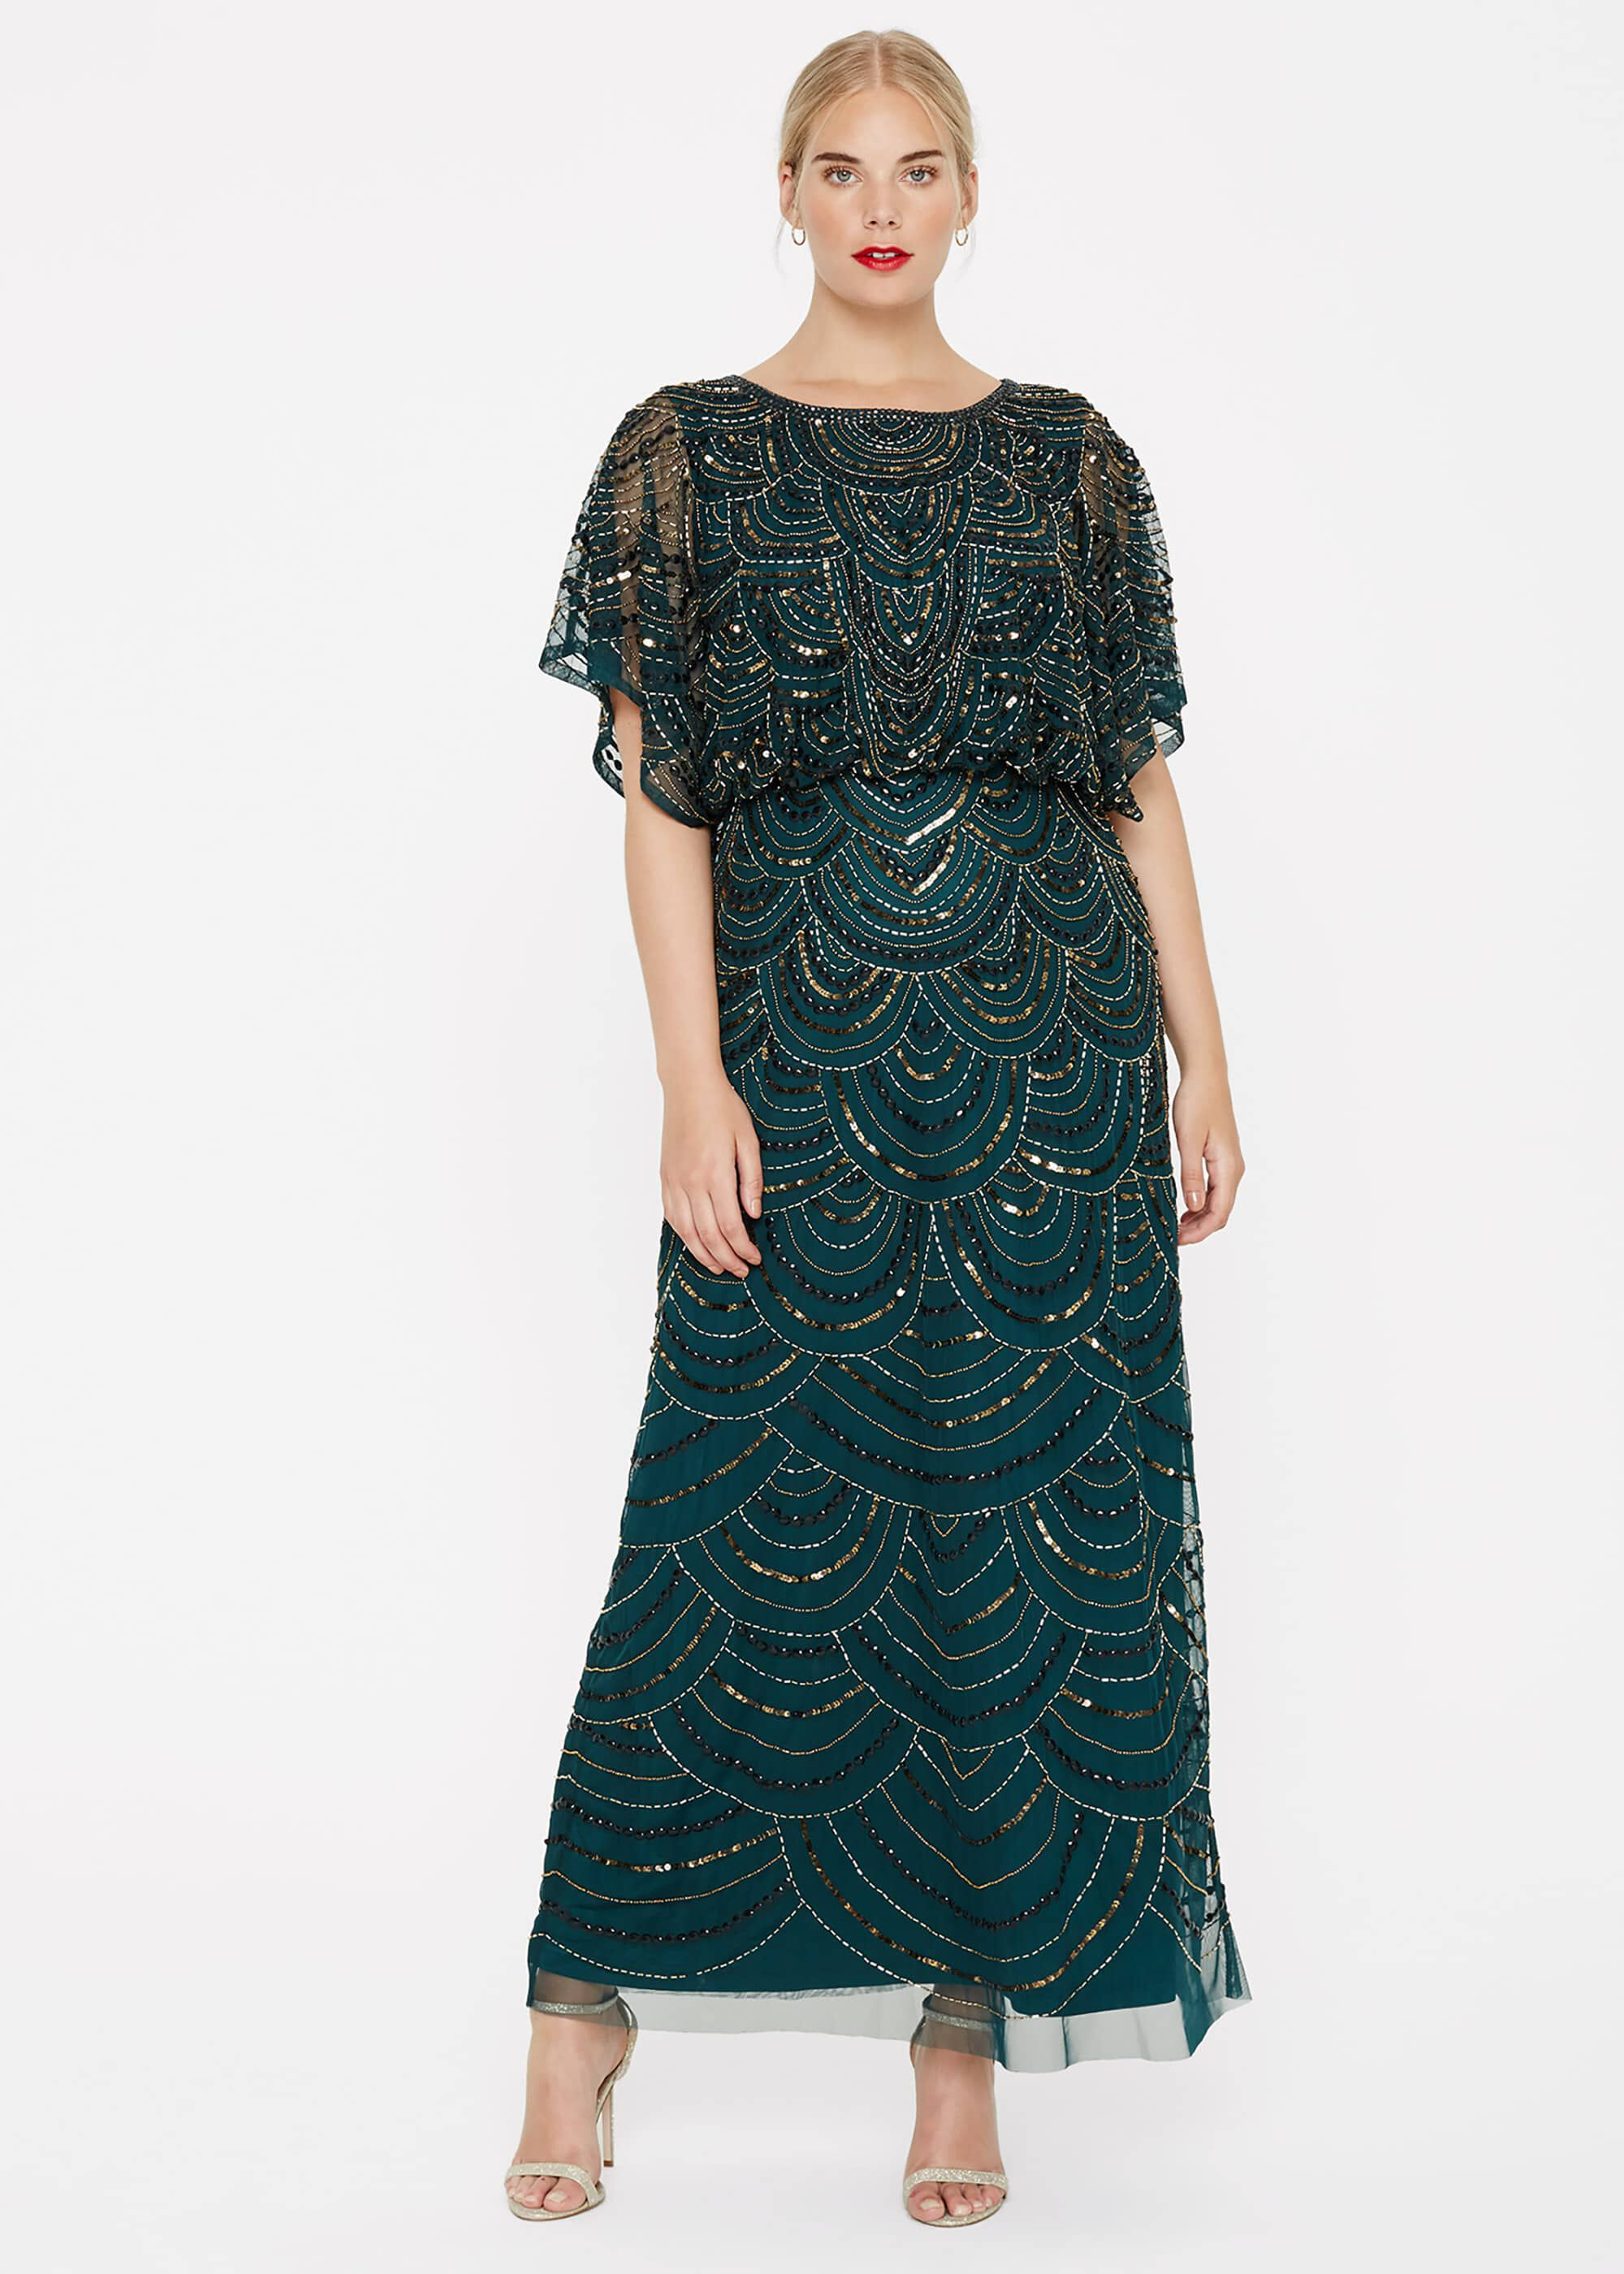 Studio 8 Jupiter Beaded Maxi Dress, Green, Maxi, Occasion Dress